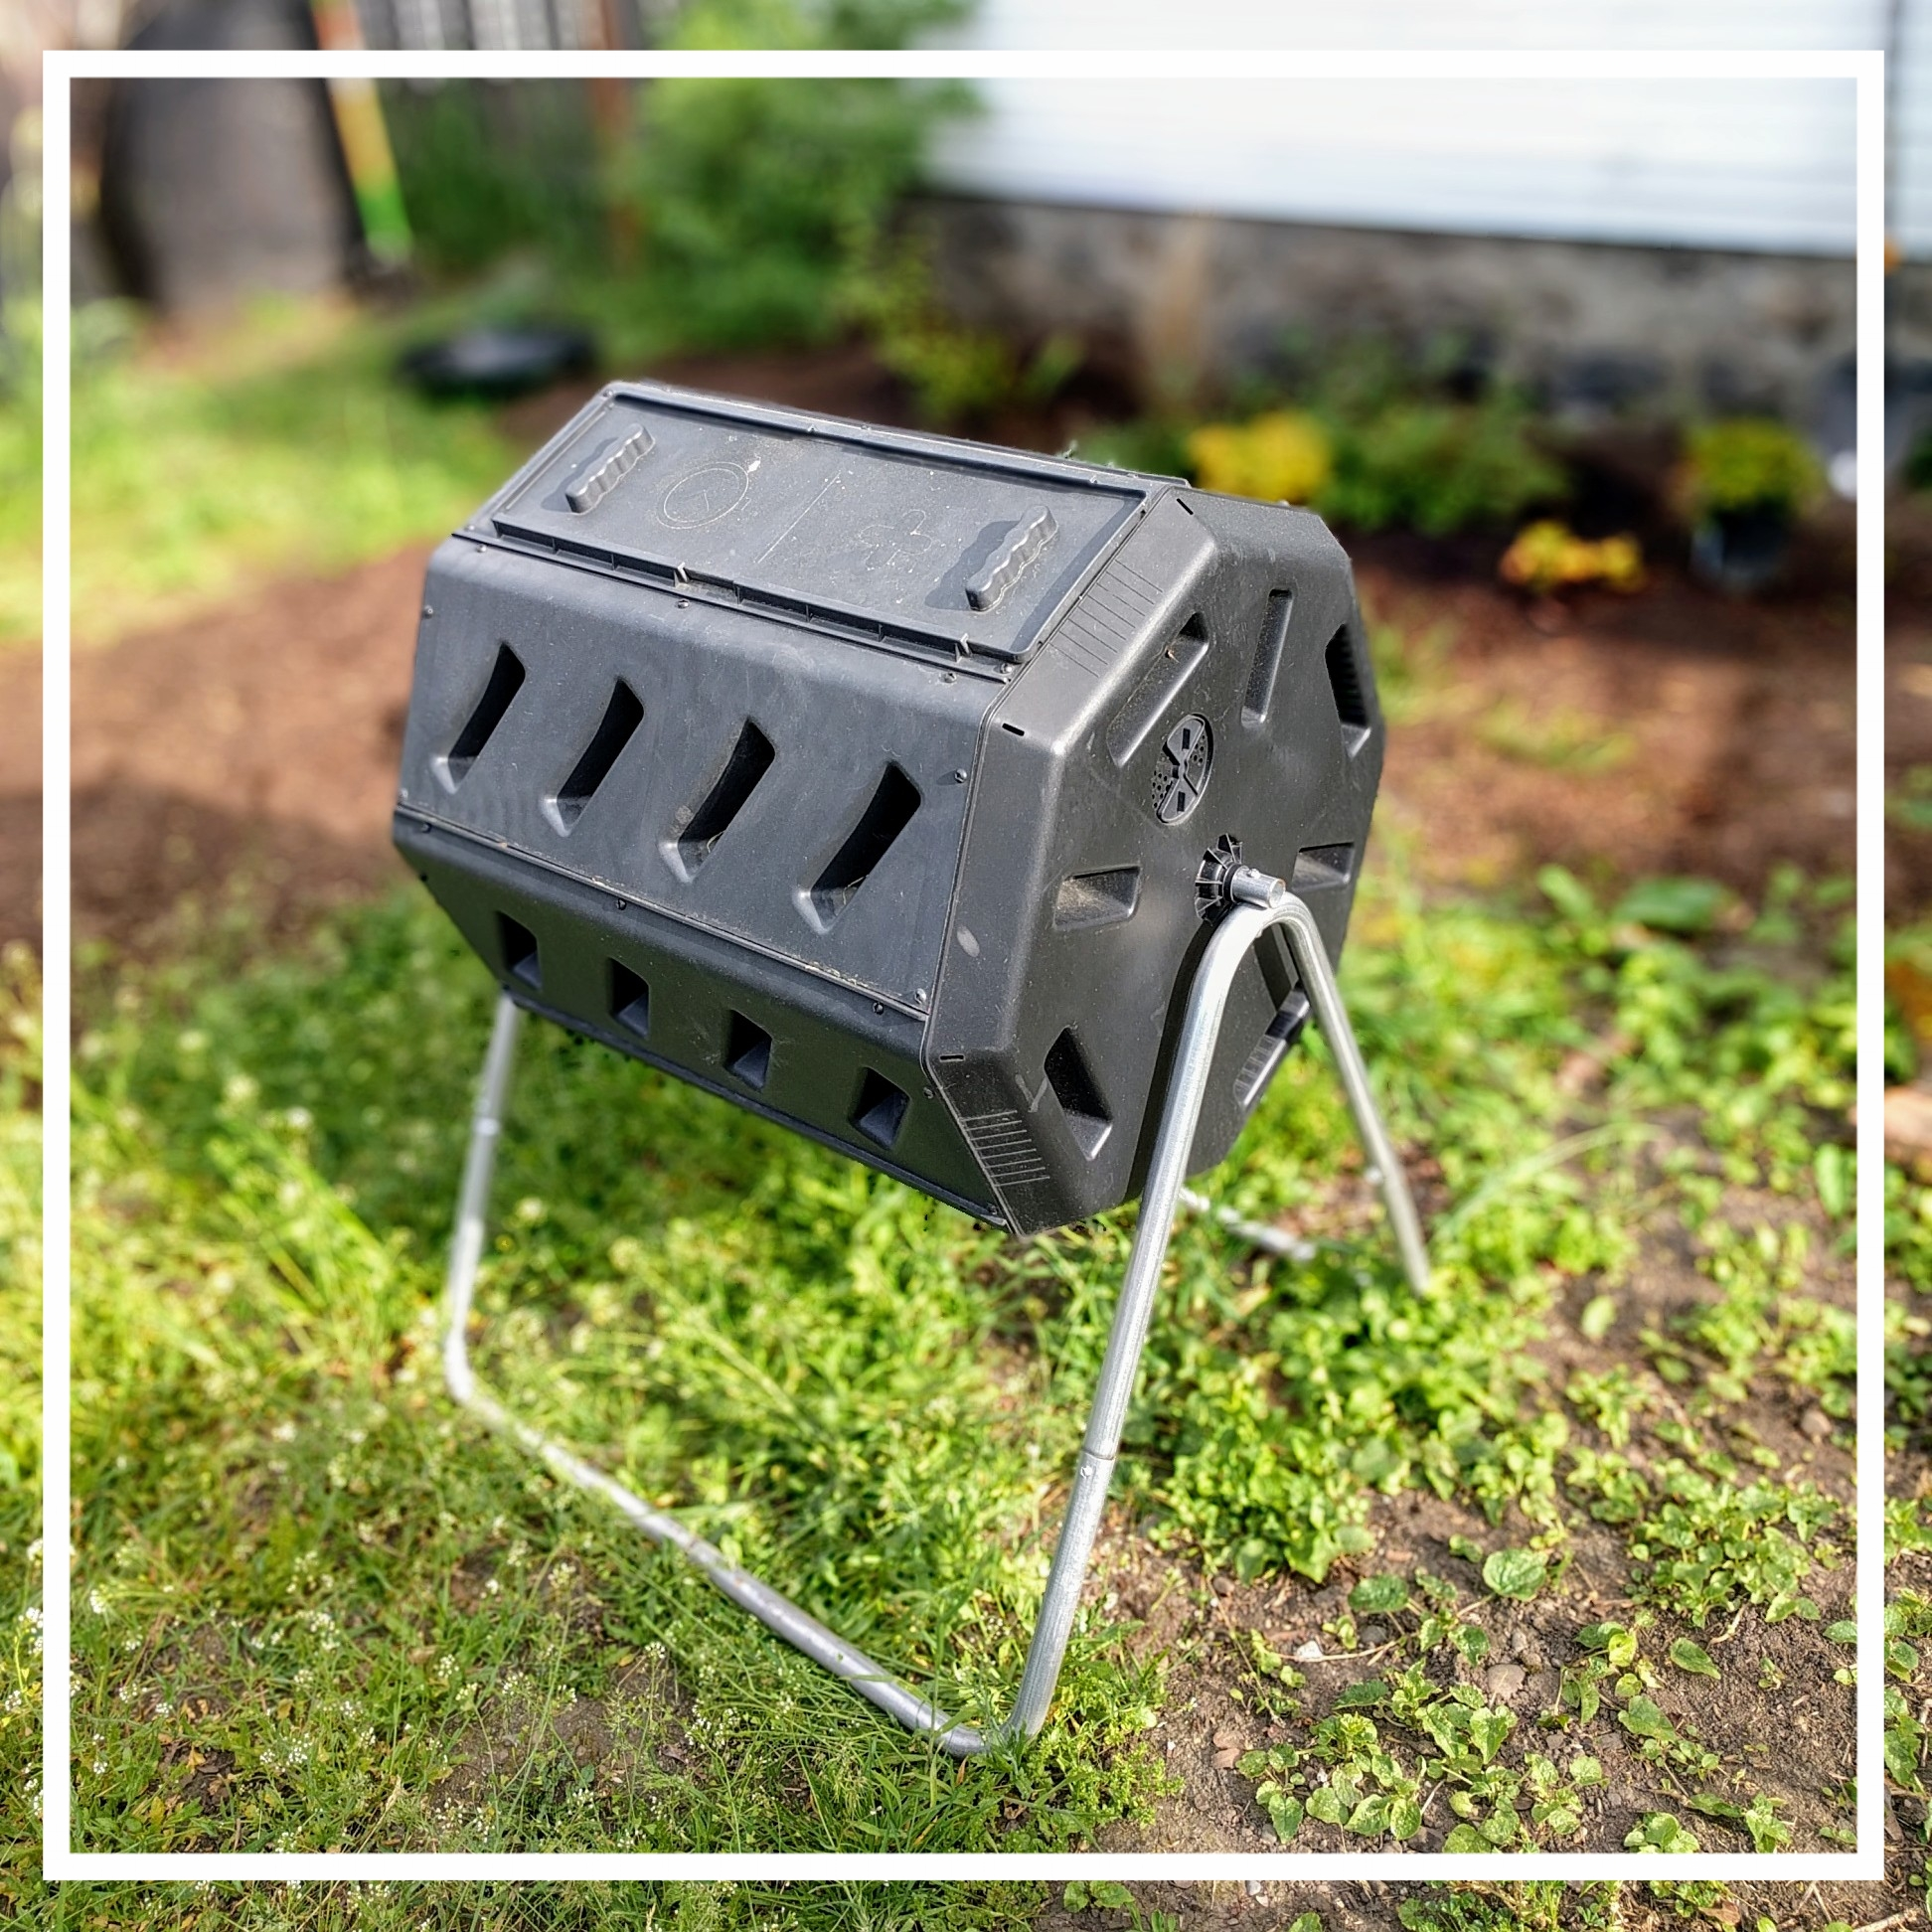 Compost tumblers will keep pests out, but have trouble letting decomposers in.